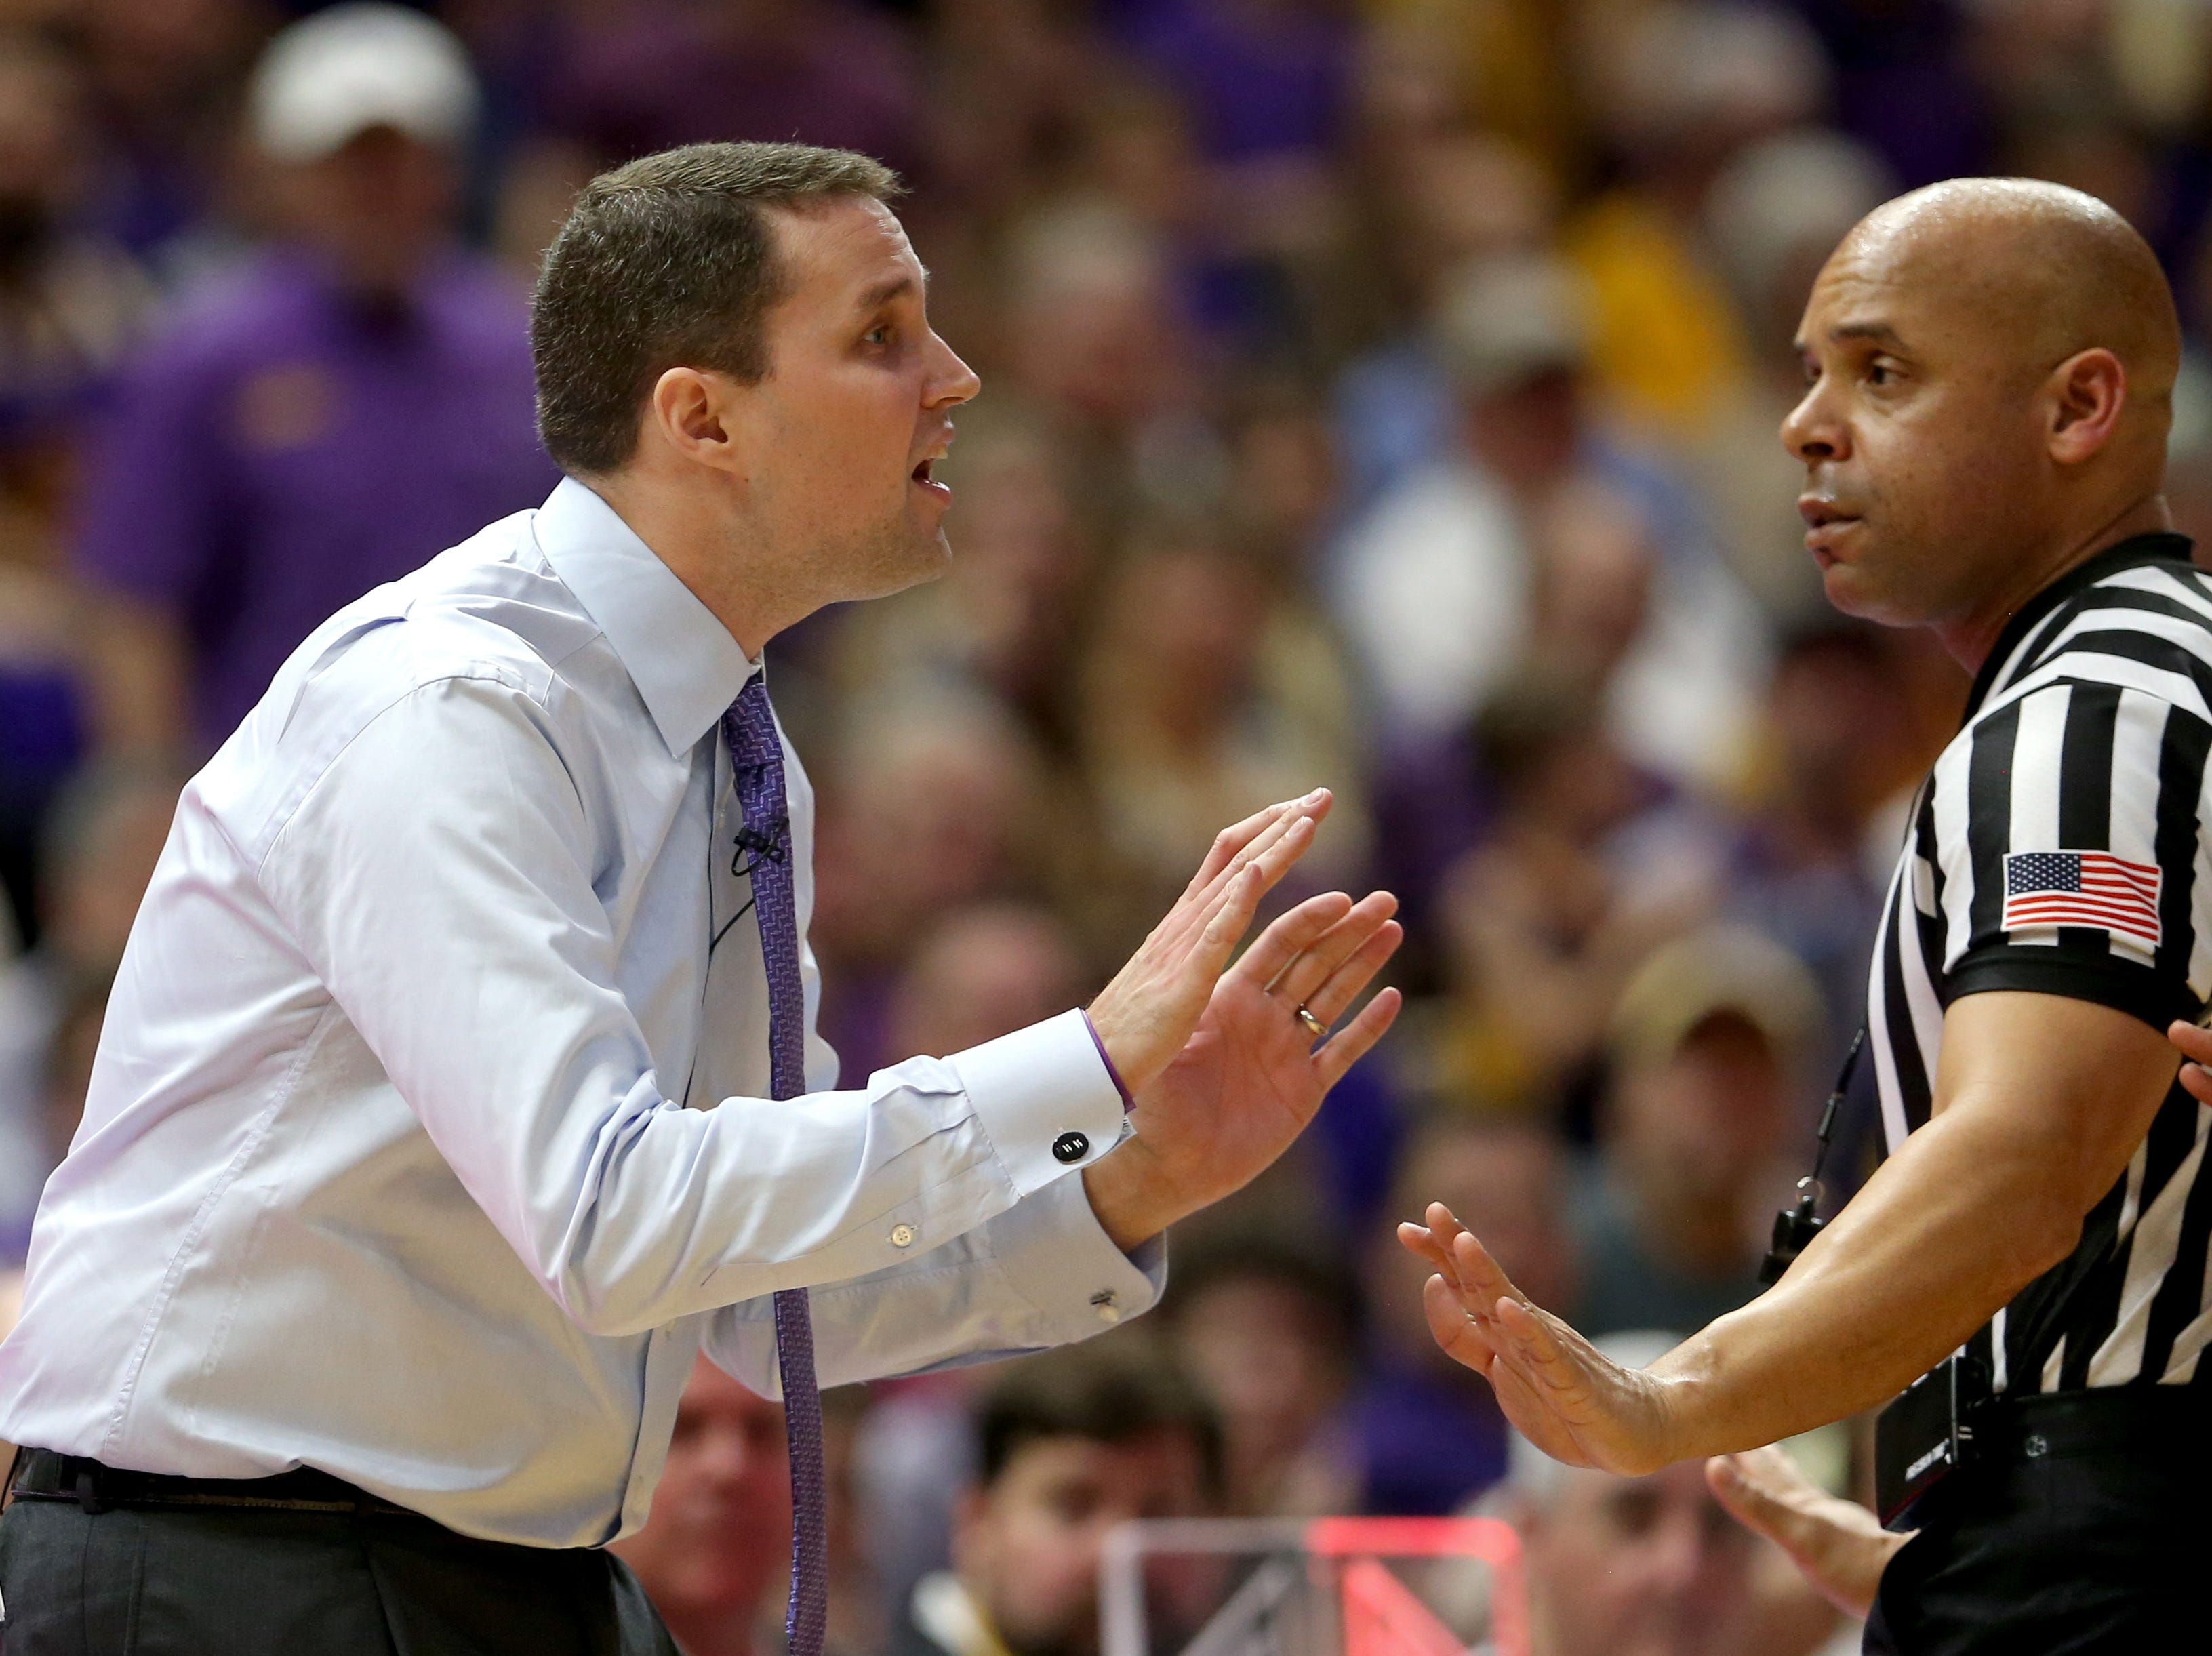 Feb 23, 2019; Baton Rouge, LA, USA; LSU Tigers head coach Will Wade gestures to a referee in the first half of their game against the Tennessee Volunteers at the Maravich Assembly Center. Mandatory Credit: Chuck Cook-USA TODAY Sports